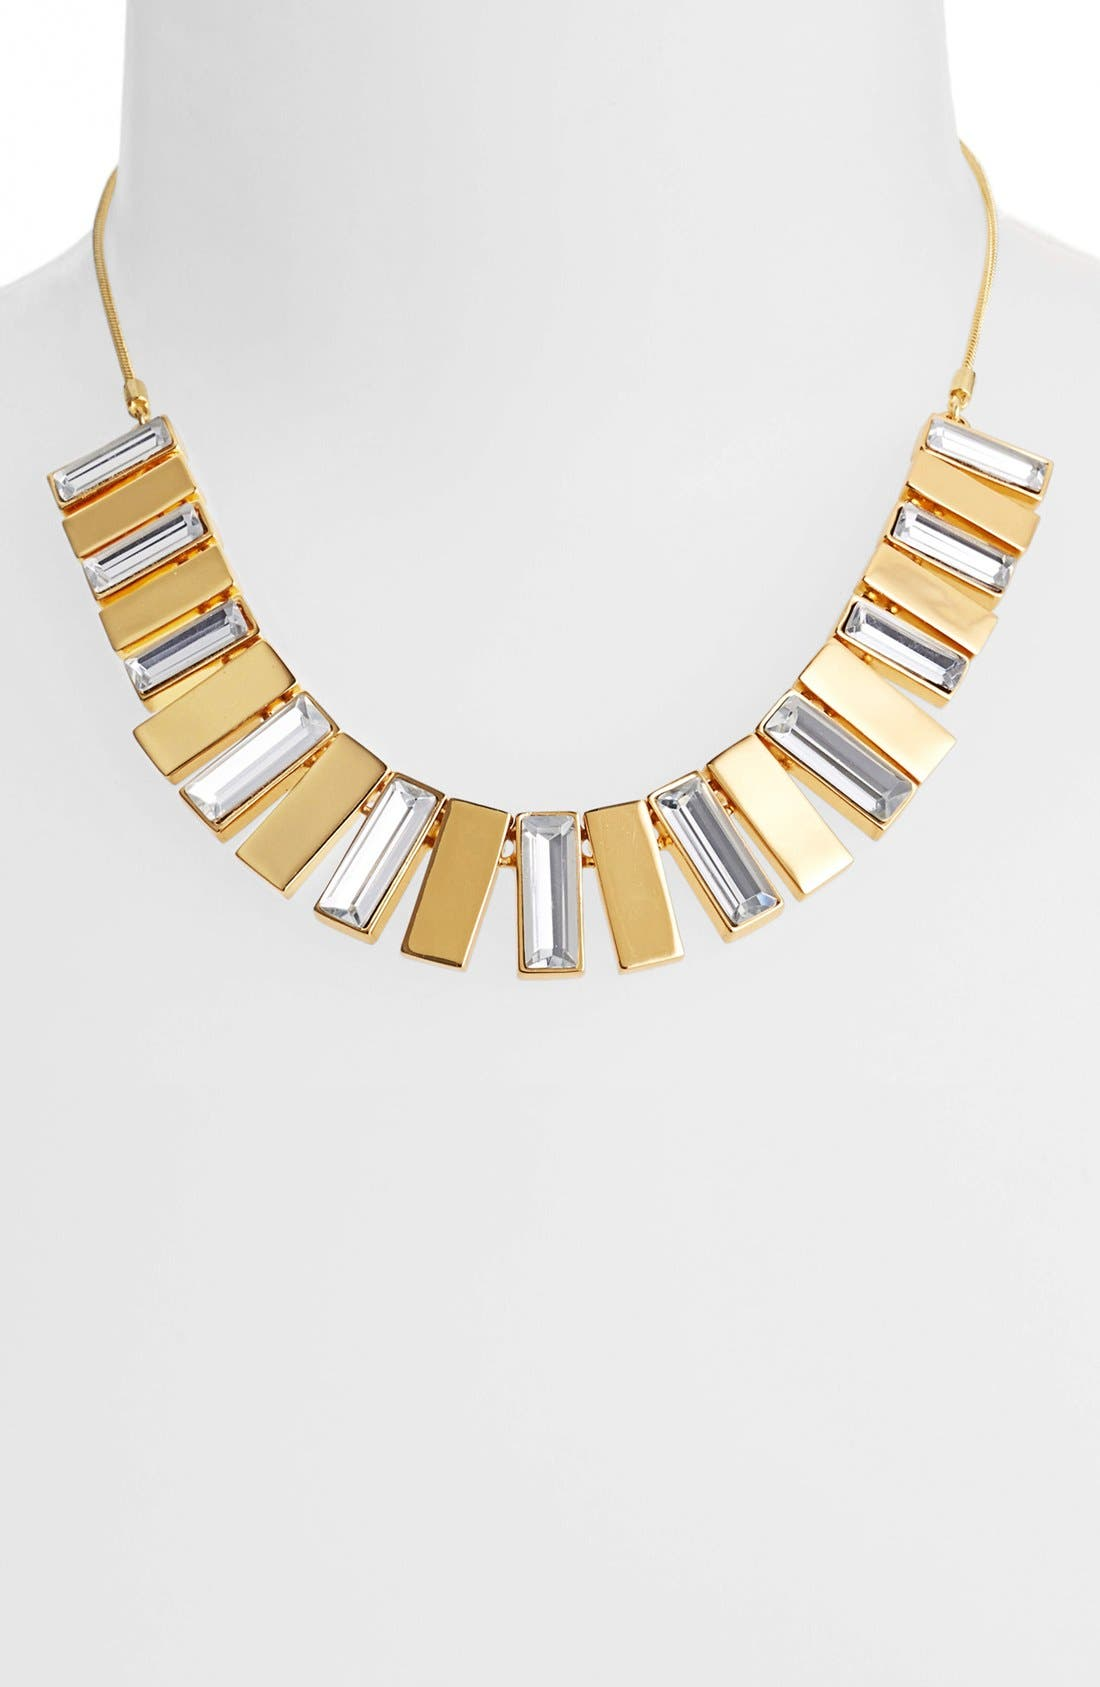 Alternate Image 1 Selected - Vince Camuto 'Crystal Clear' Baguette Crystal Bib Necklace